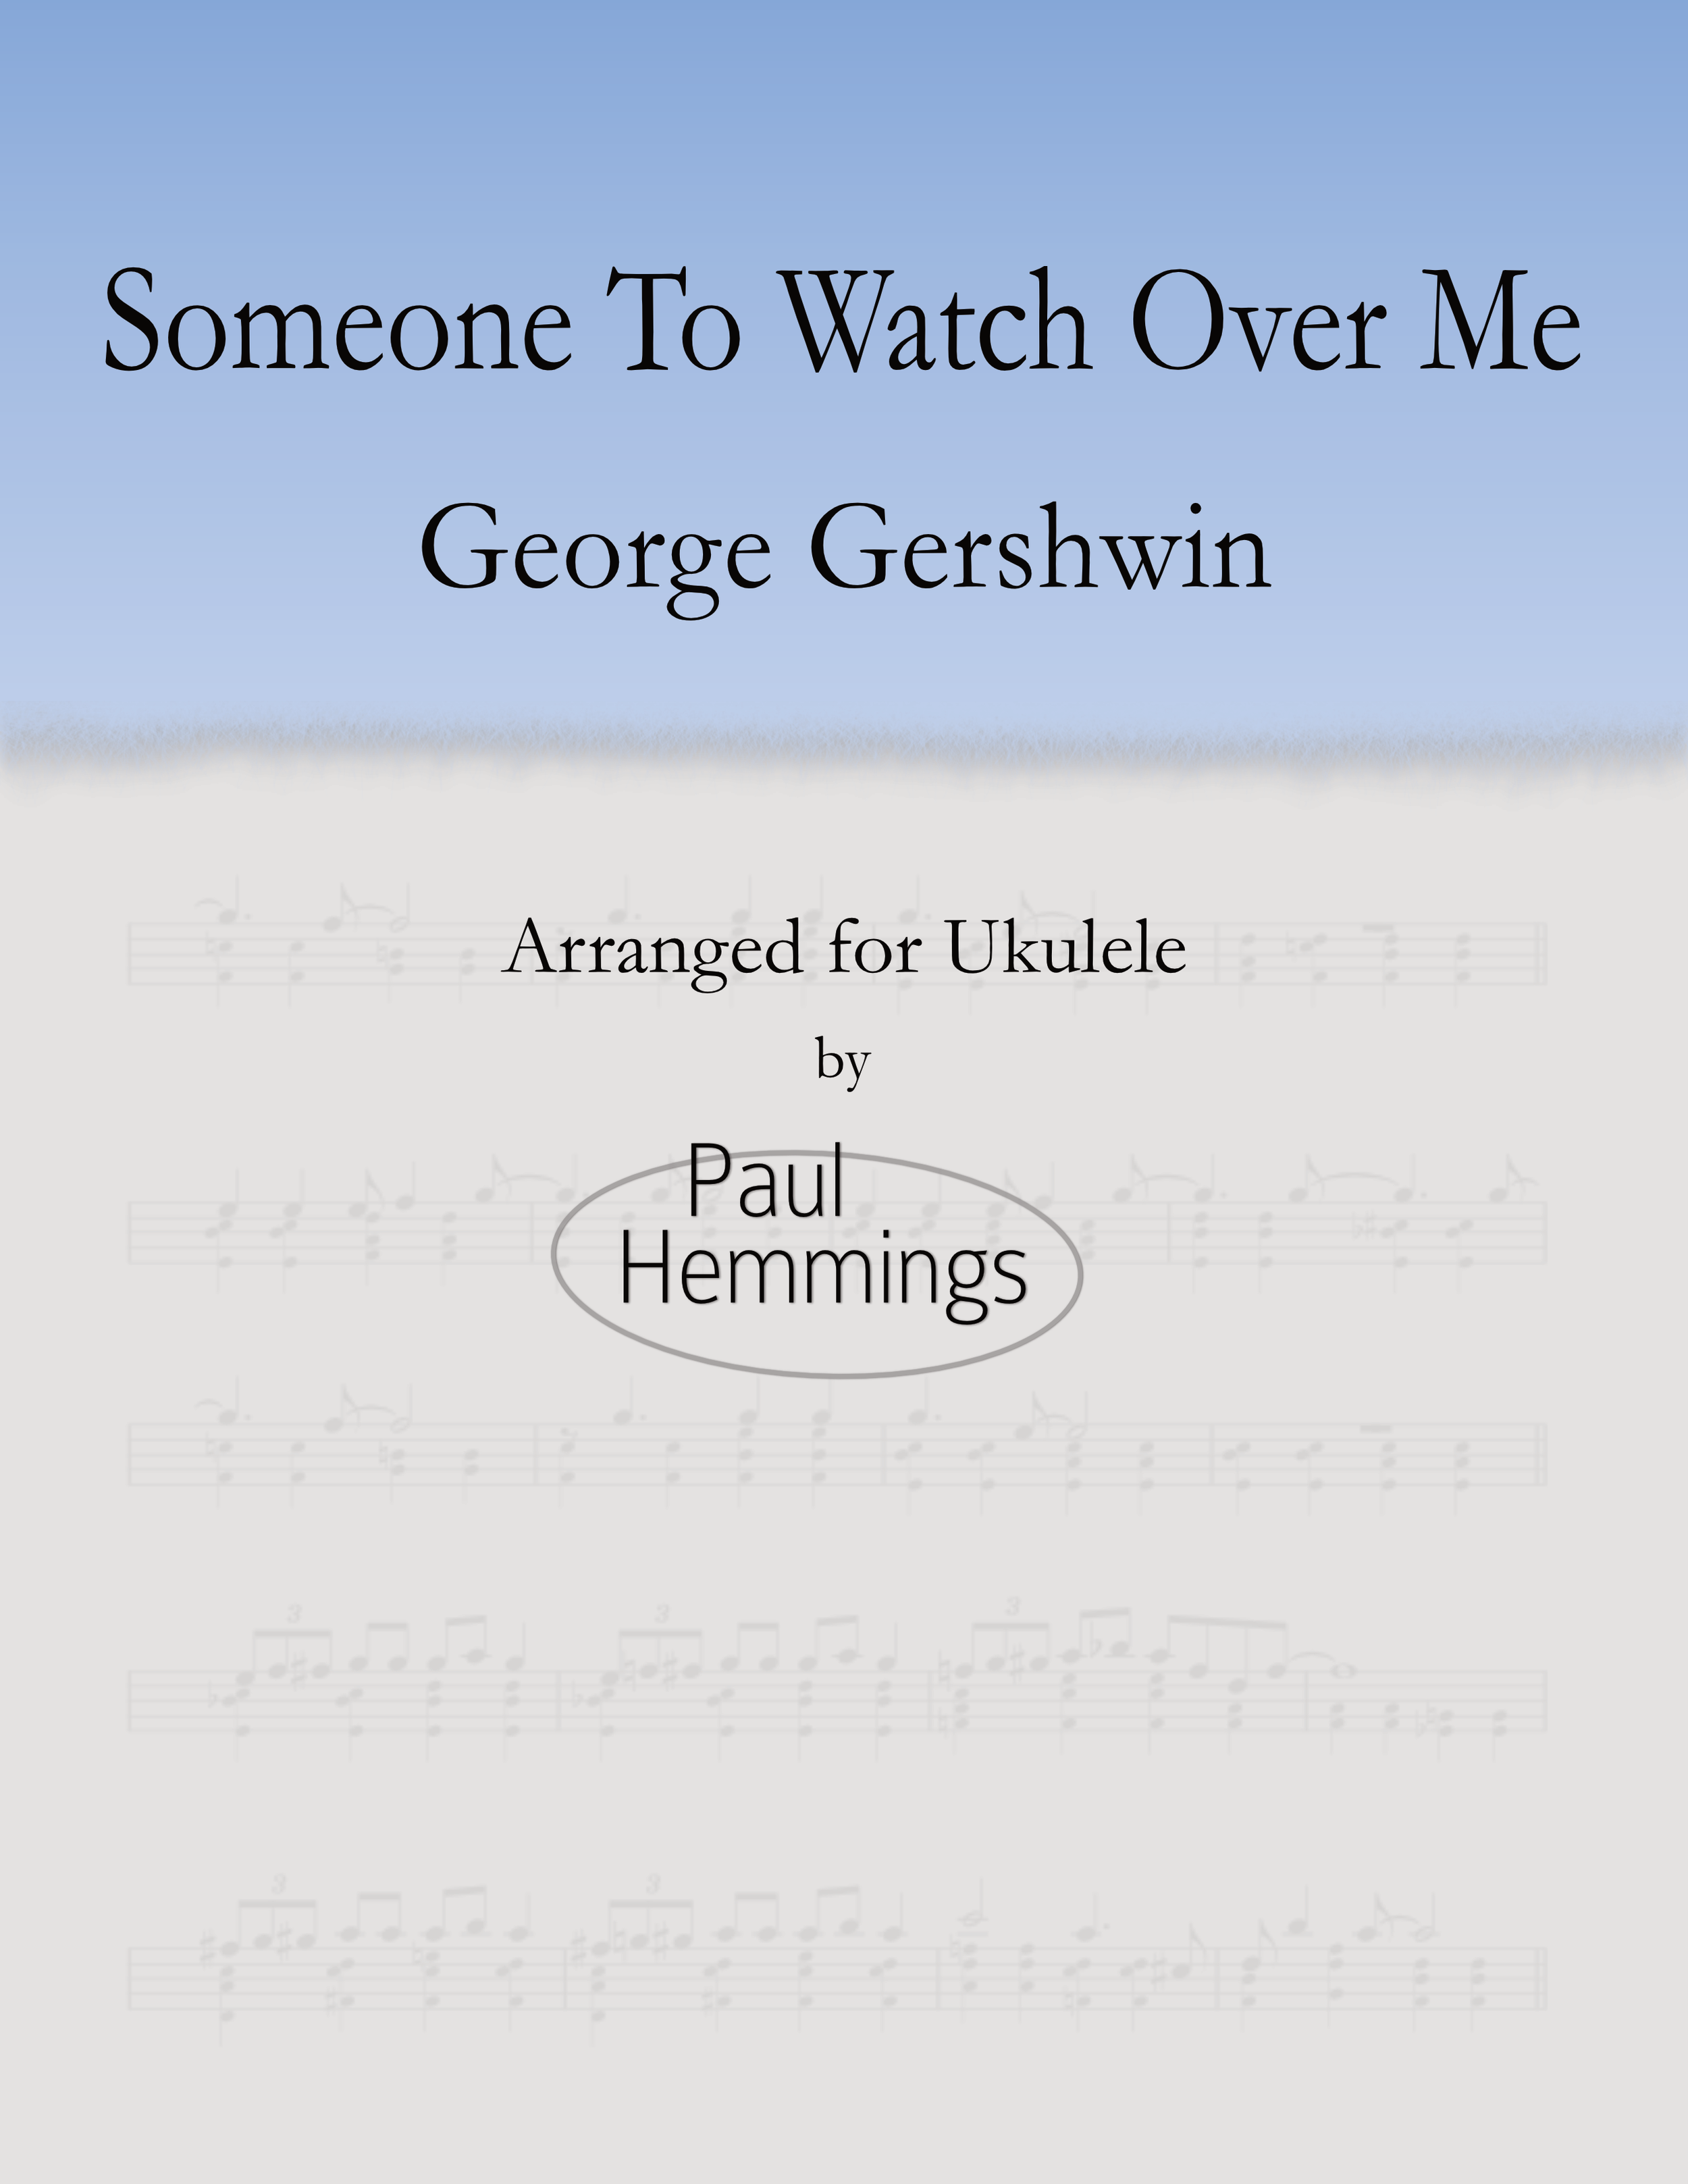 Someone To Watch Over Me COVER.png